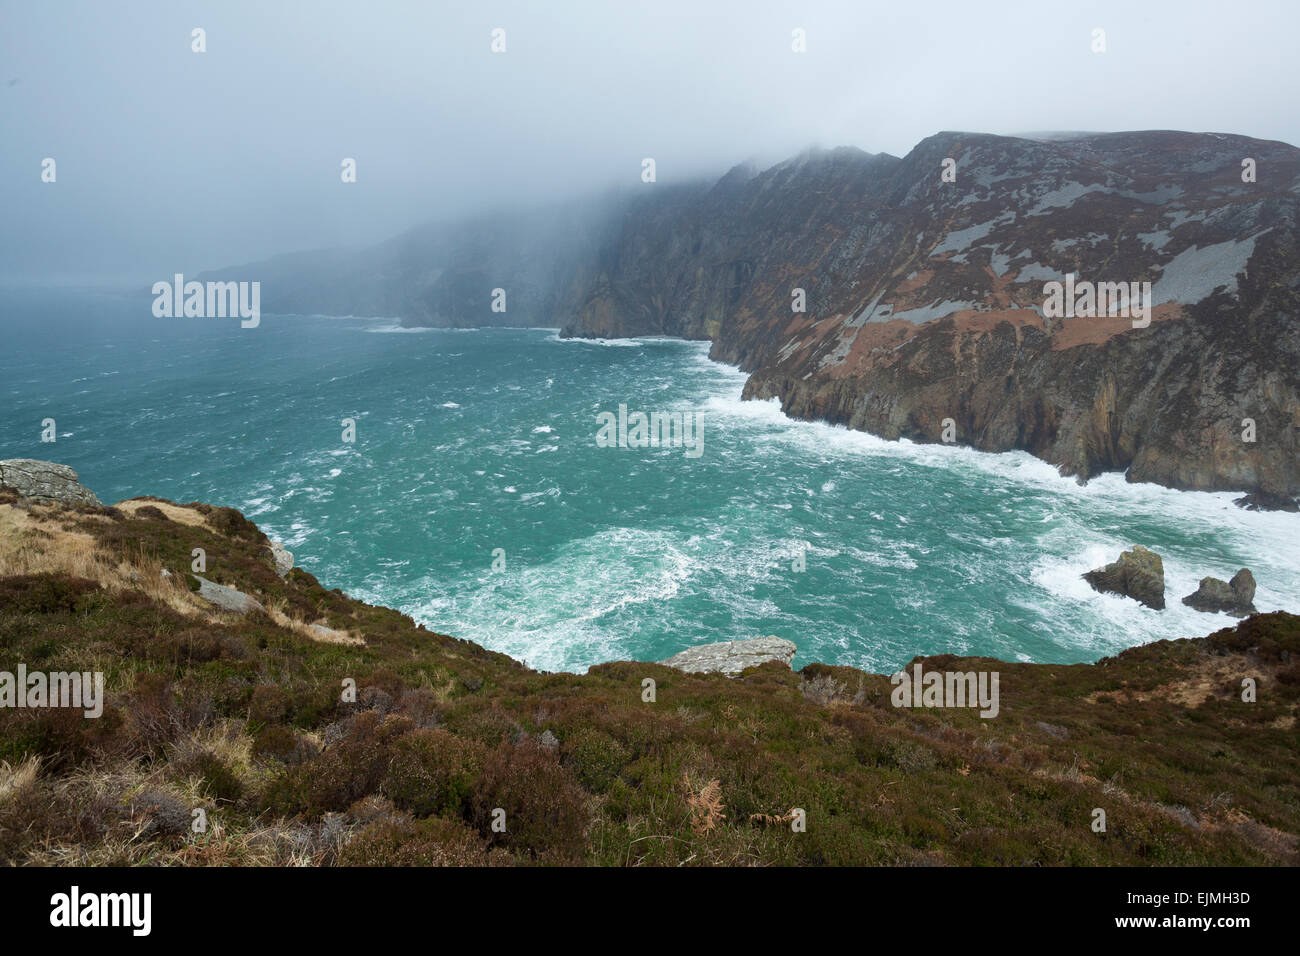 Rain approaching the Slieve League cliffs in Co. Donegal, in the northwest of Ireland - Stock Image